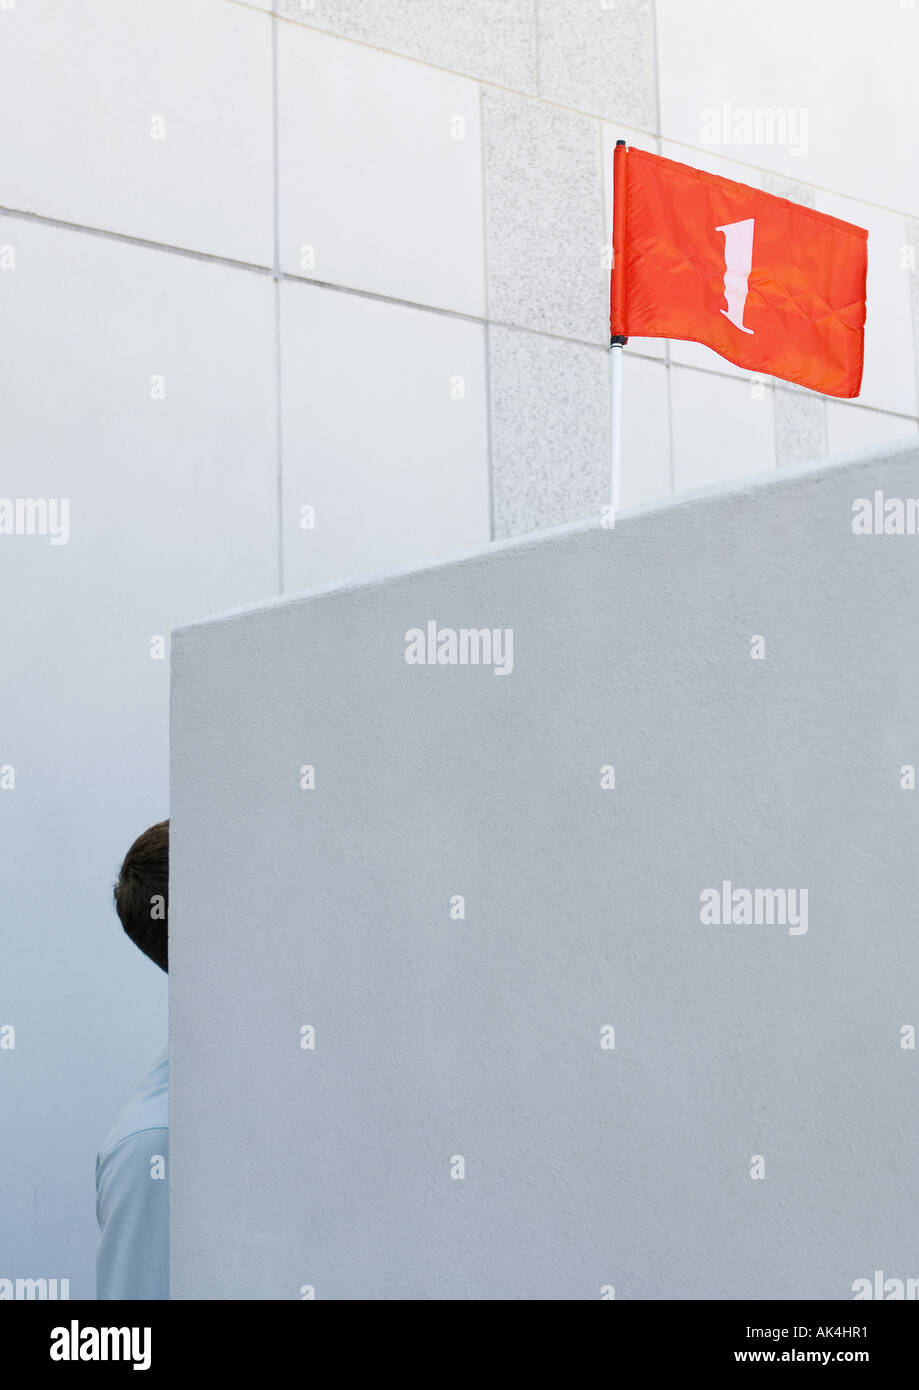 Part of man visible behind wall and red flag with number '1' overhead - Stock Image